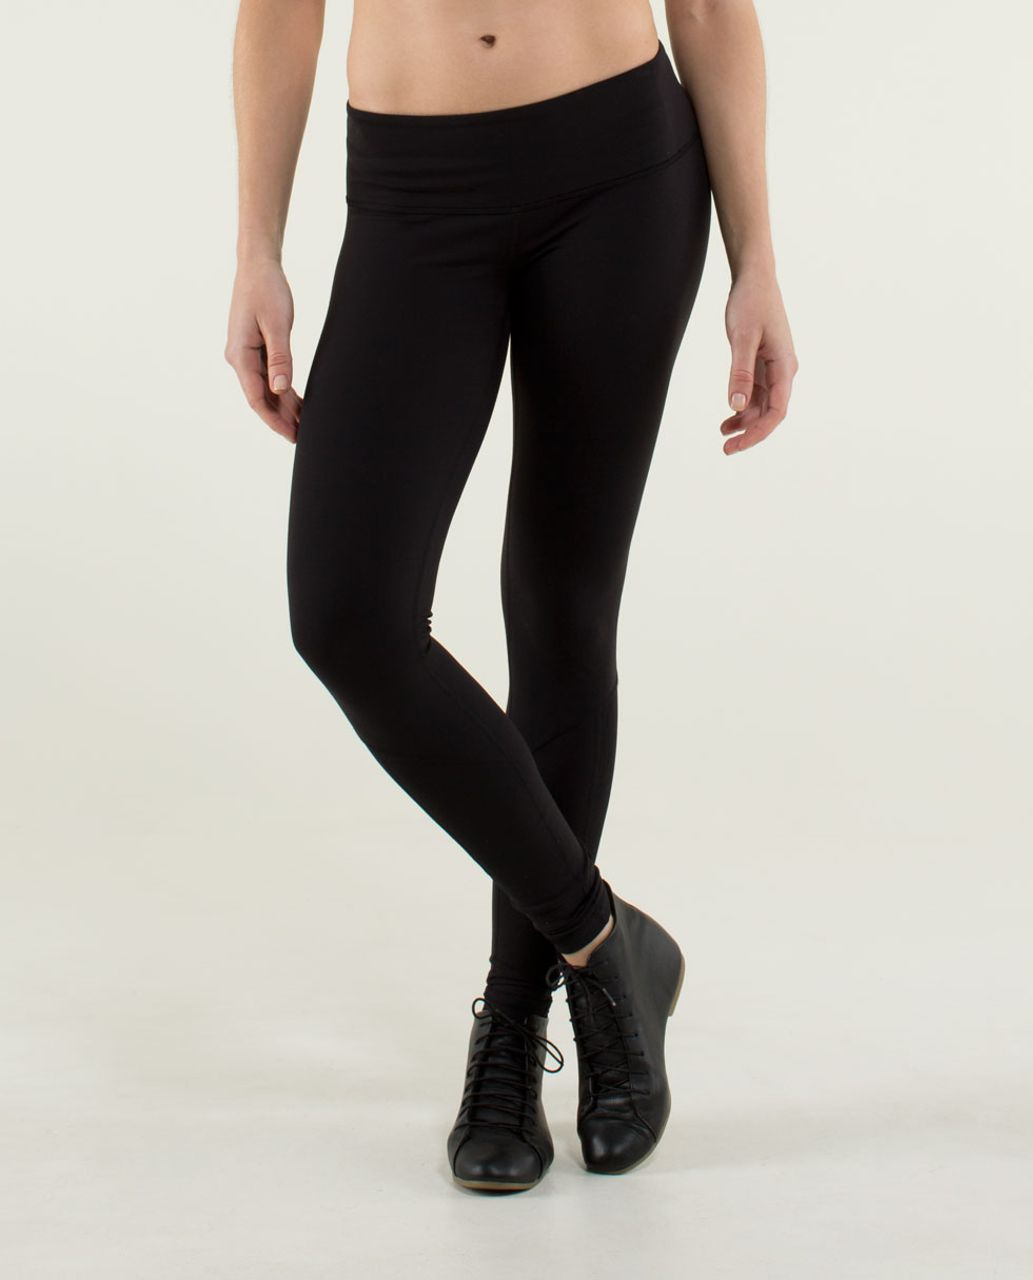 Lululemon Wunder Under Pant *Lace - Black